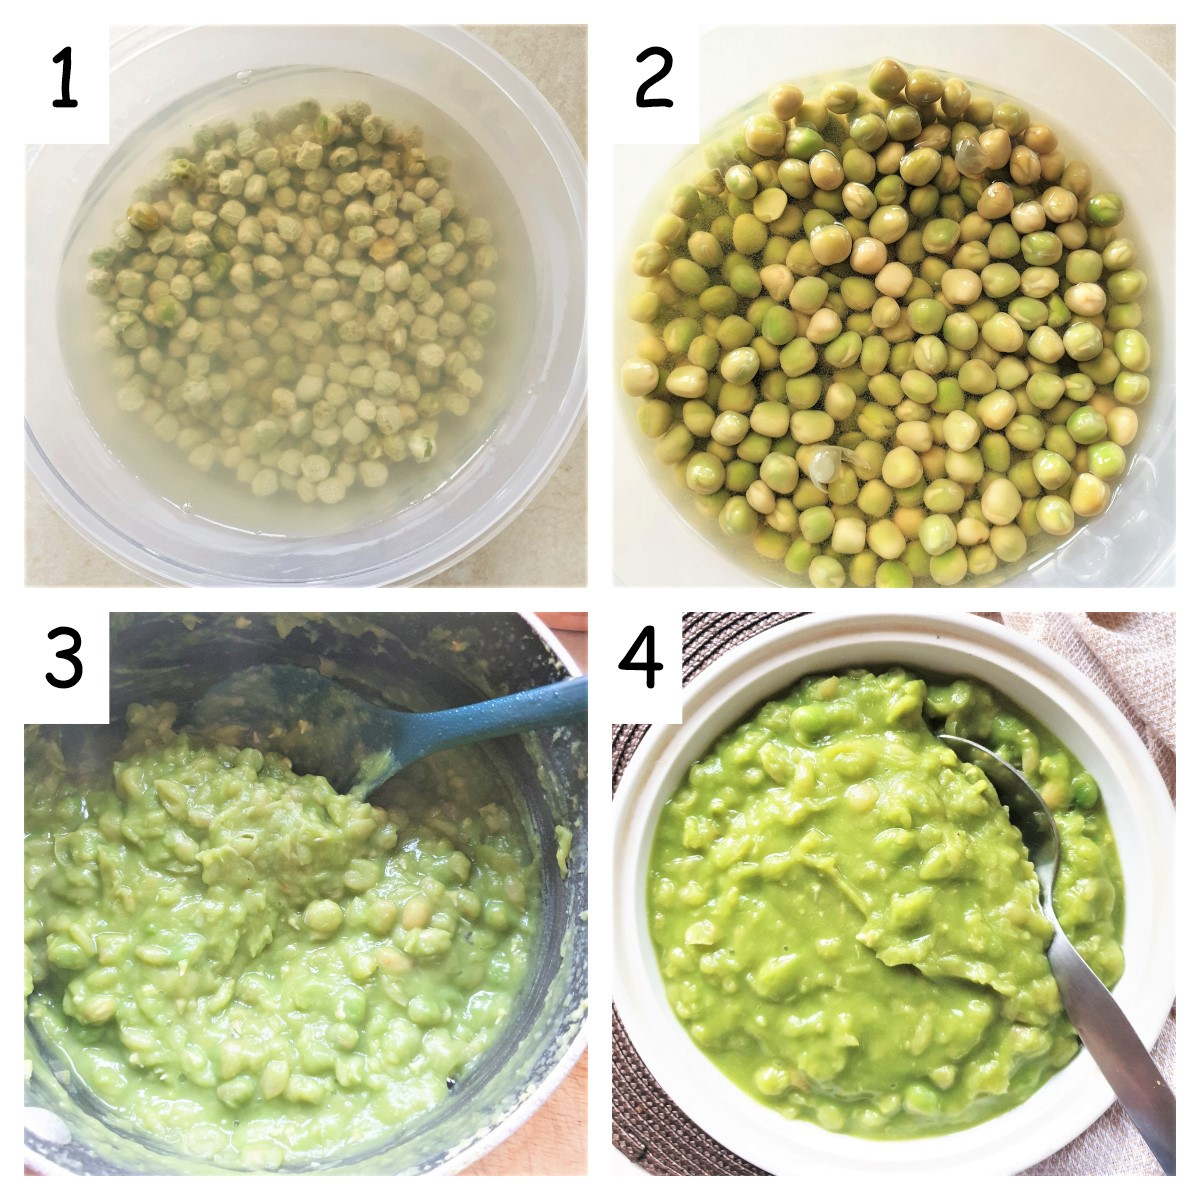 Collage of 4 images showing steps for making british mushy peas.